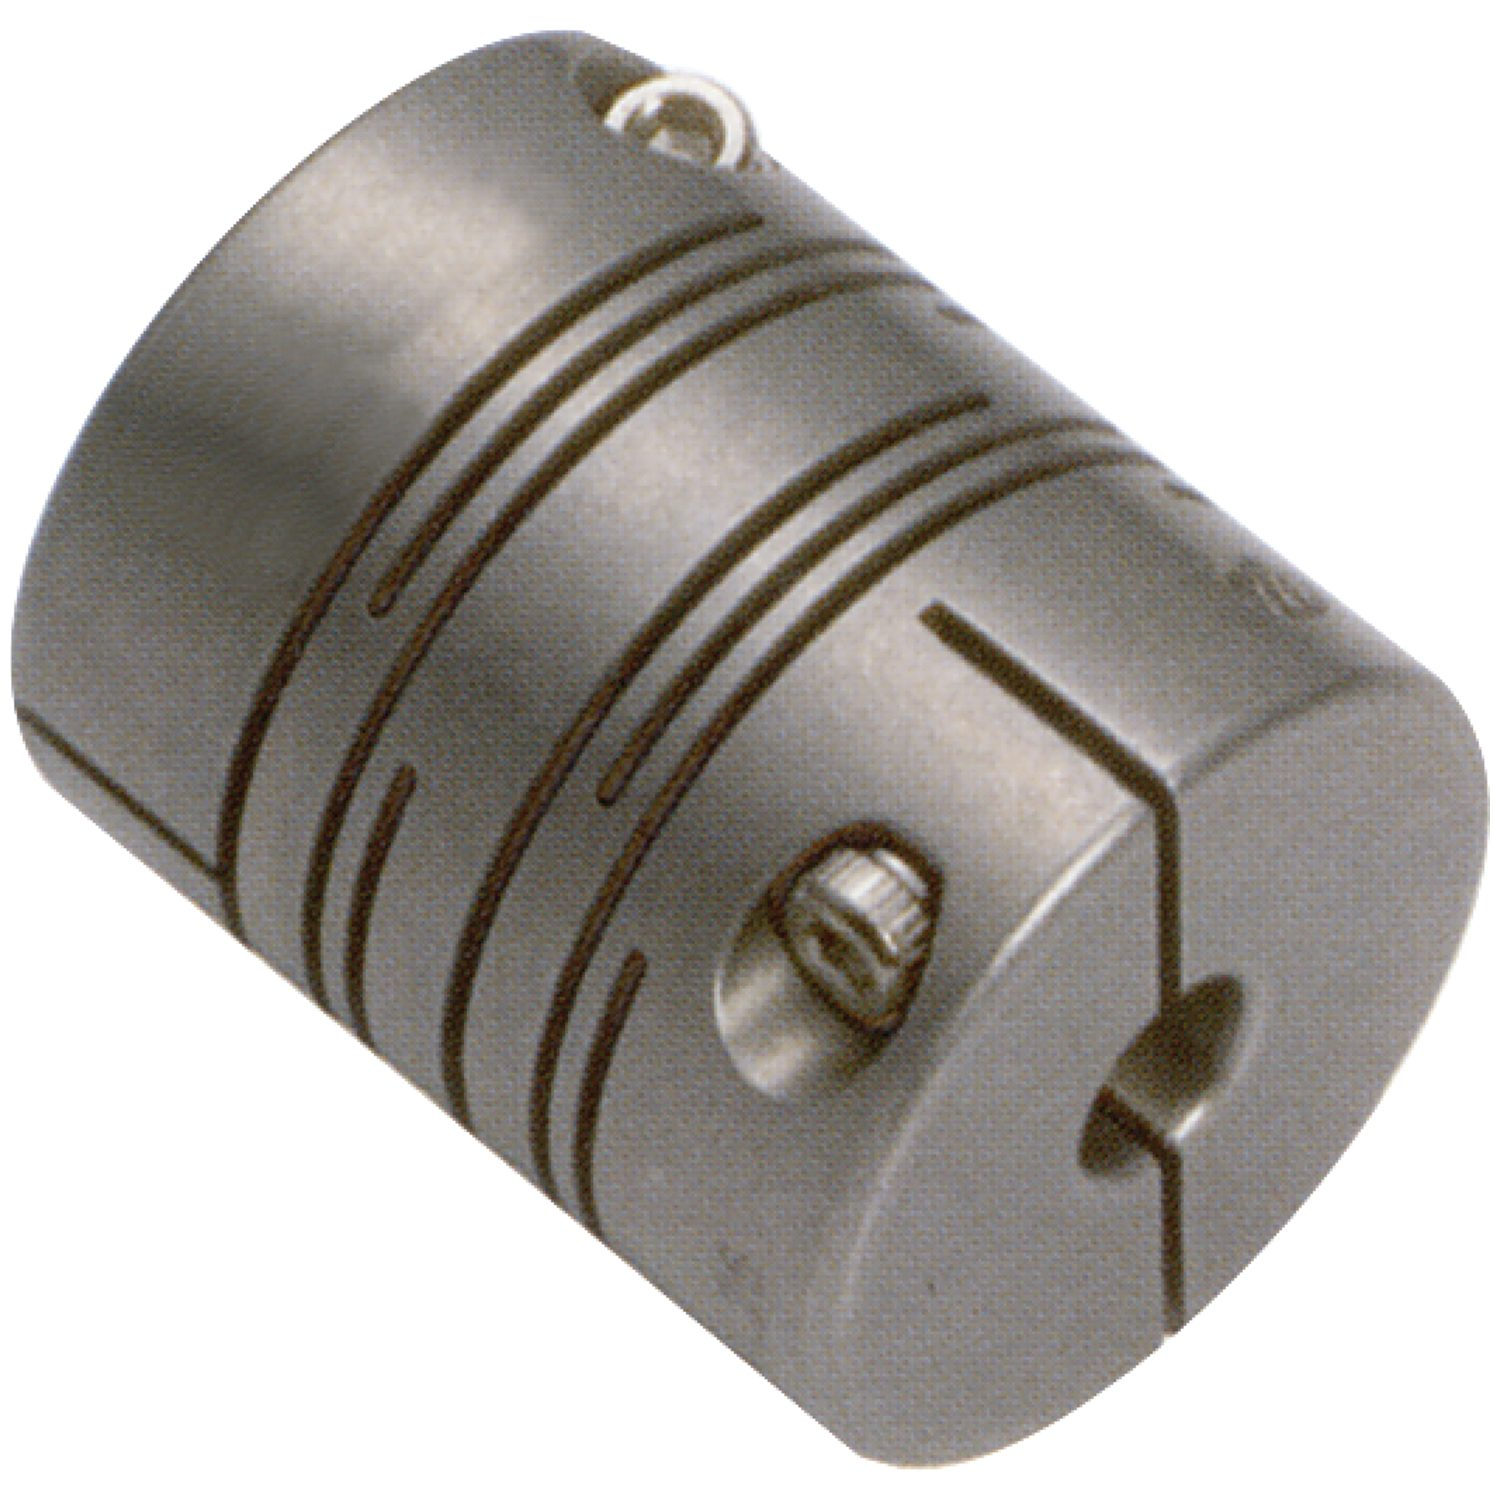 R3004.1 - Spiral Beam Coupling - stainless steel